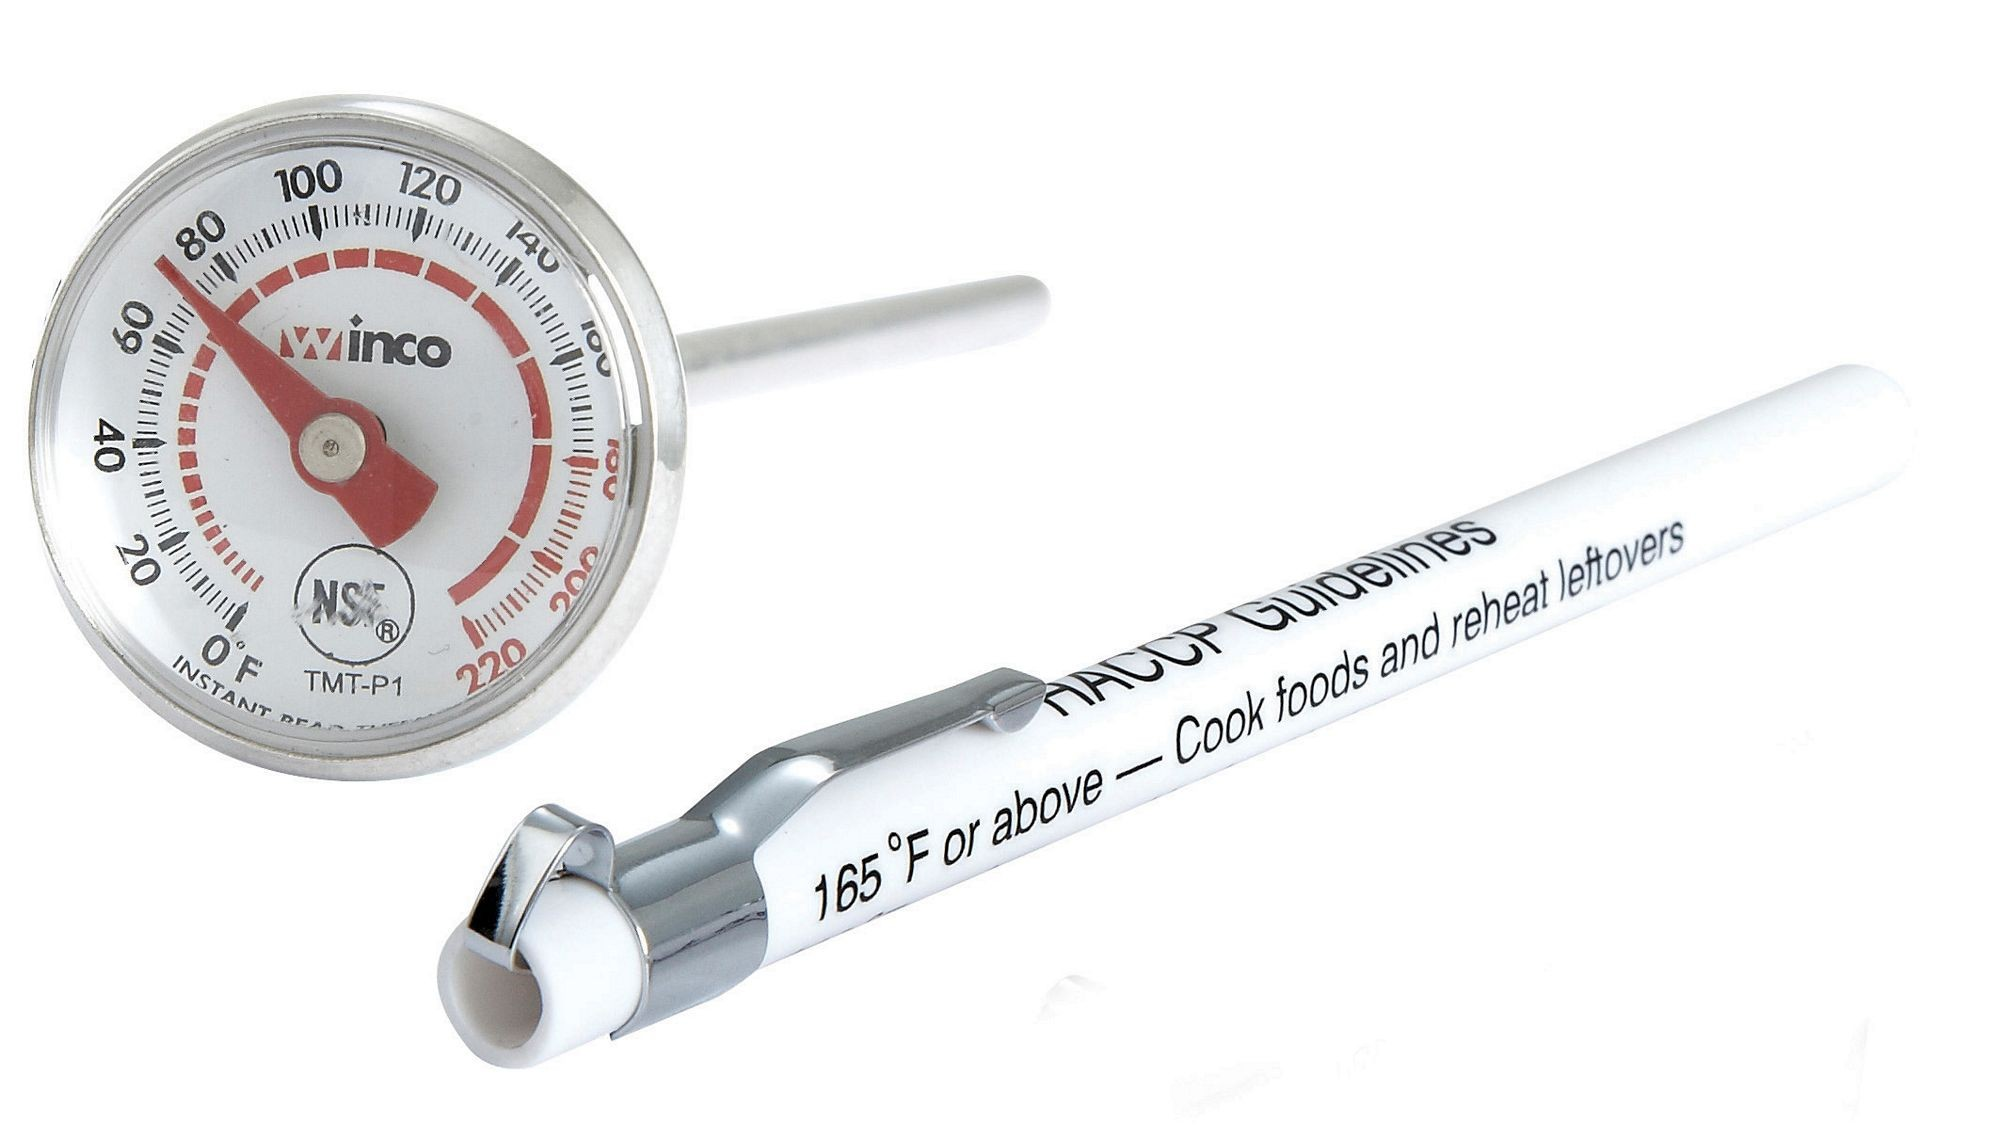 Dial-Type Pocket Test Thermometer With Case - 0F To 220F